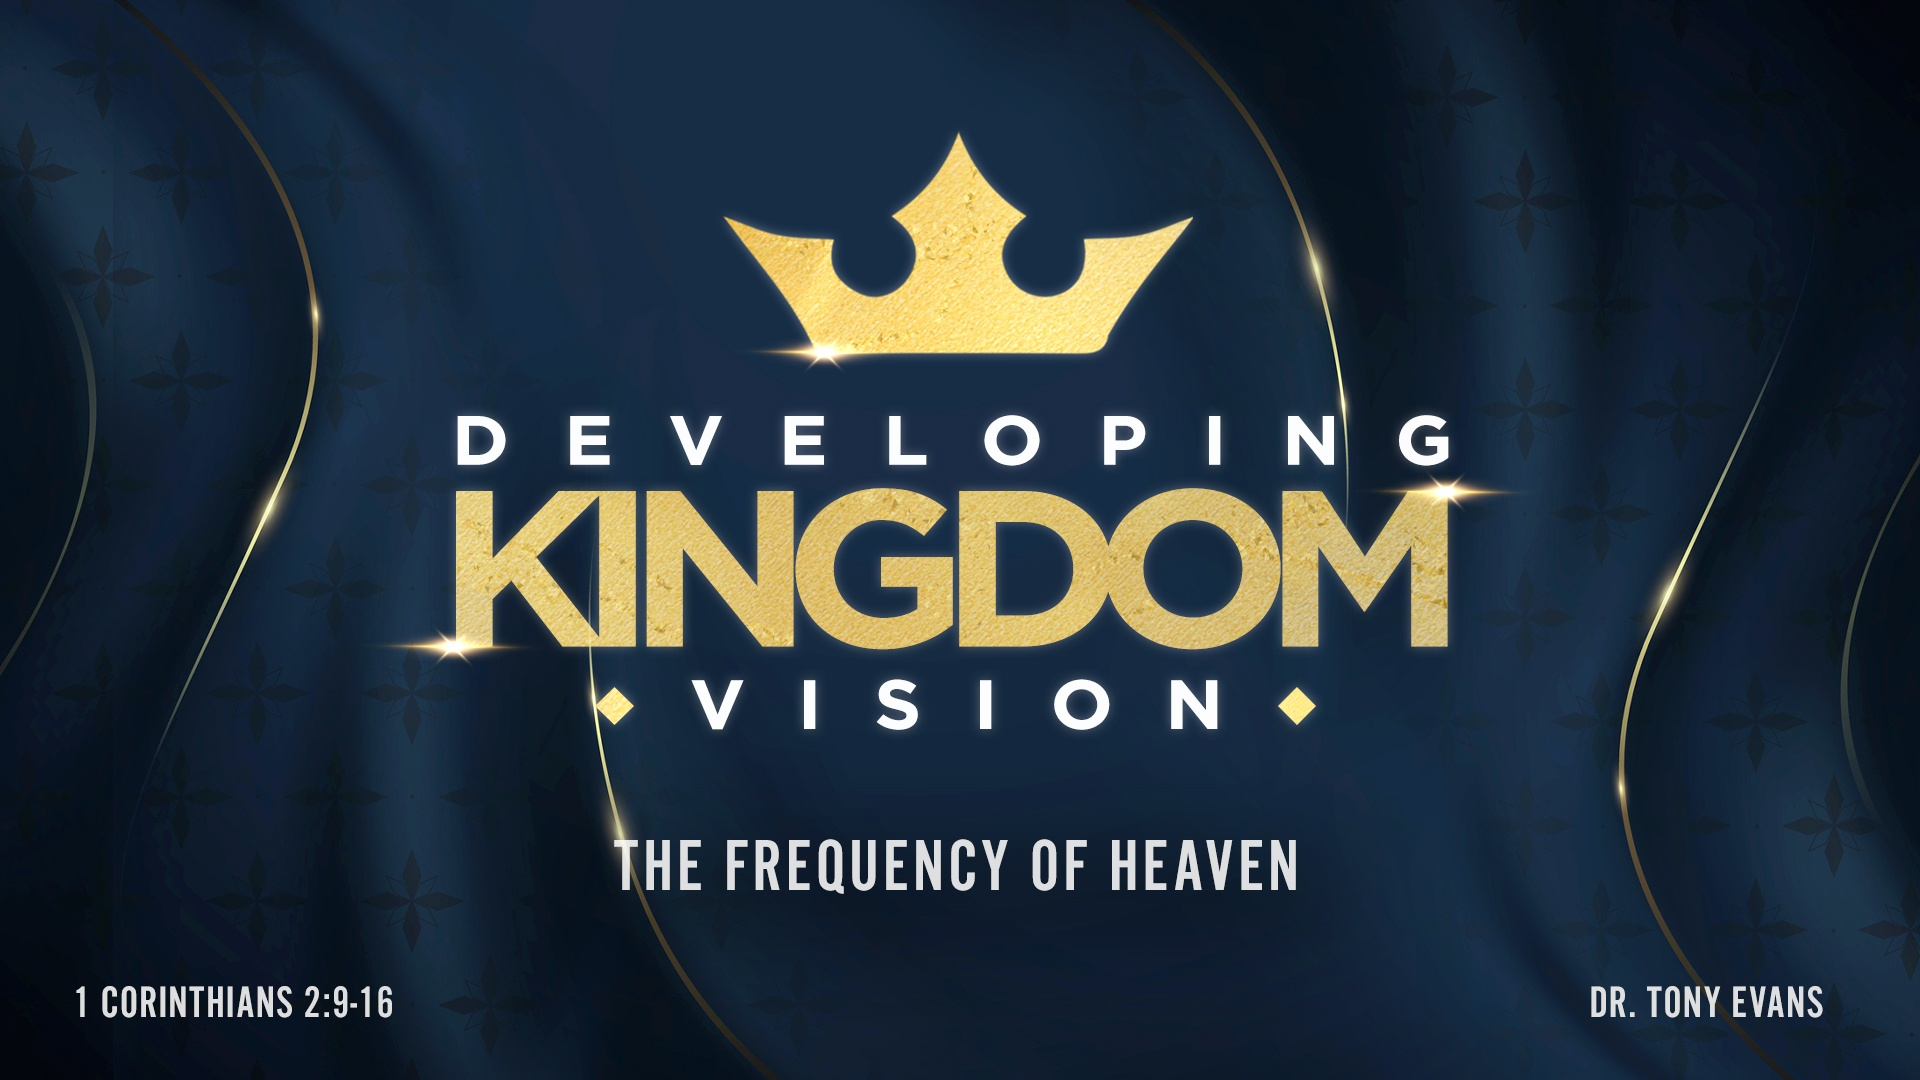 Developing Kingdom Vision Frequency of Heaven by Dr. Tony Evans